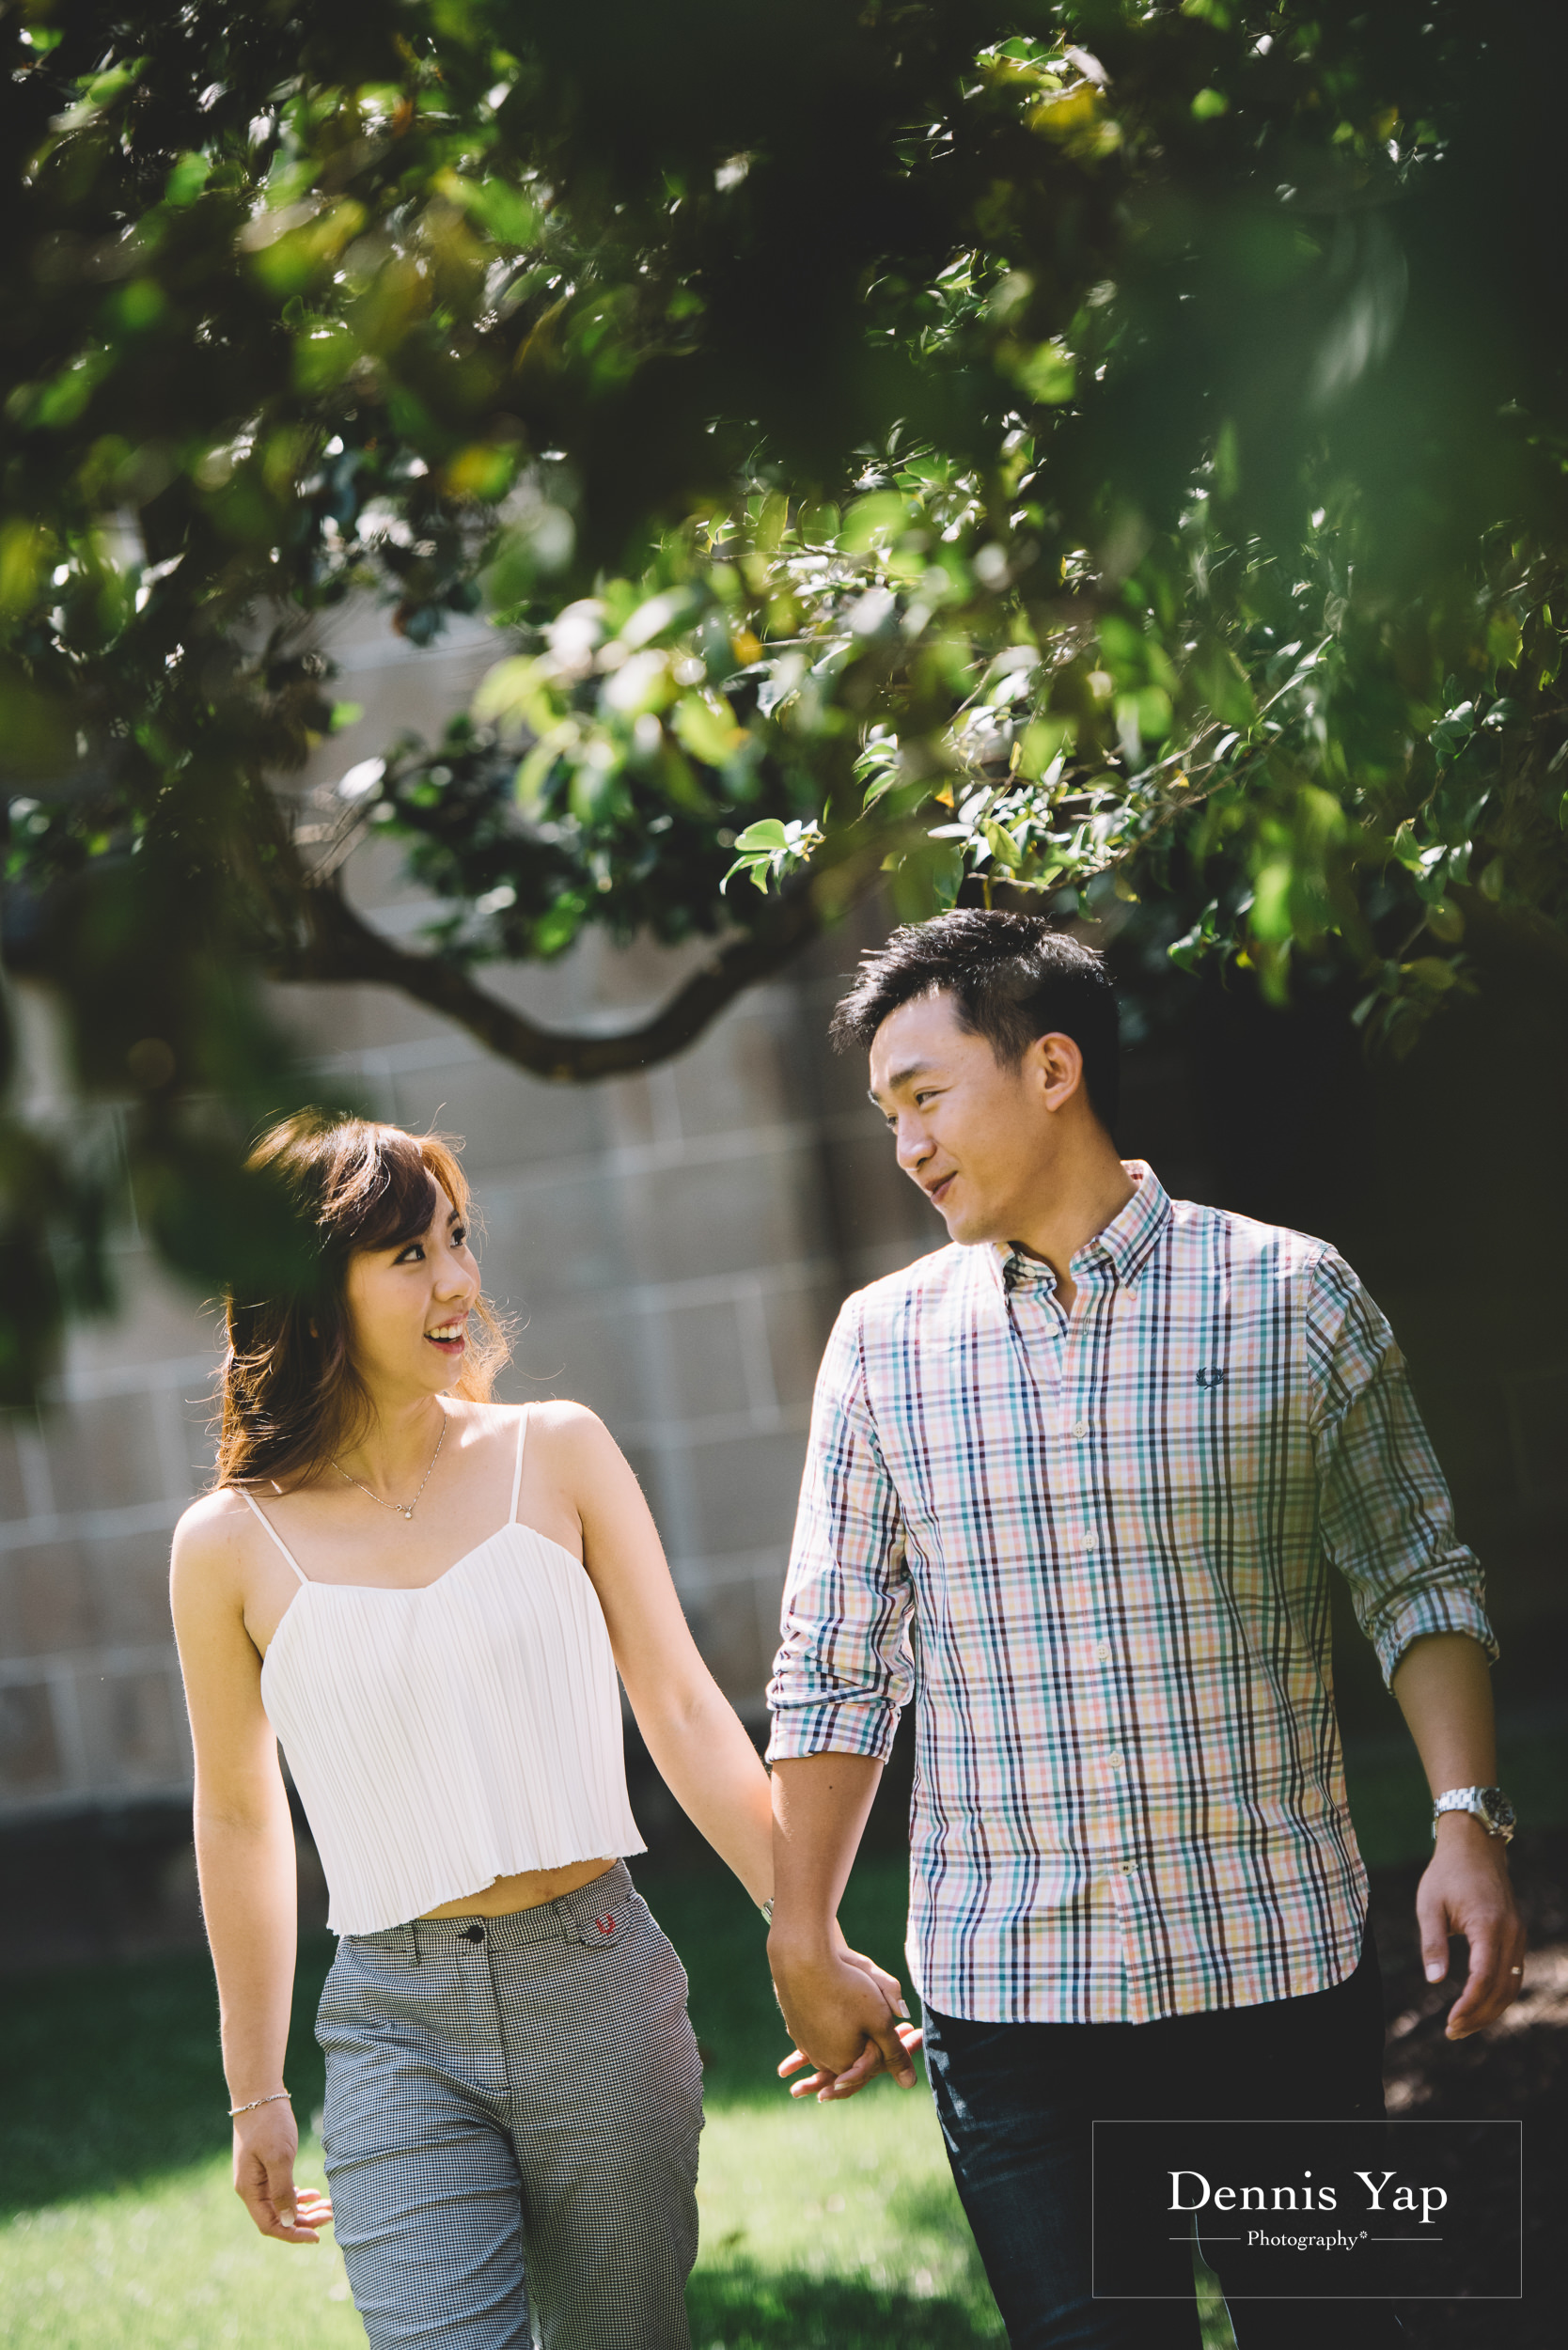 kok tee christine pre wedding melbourne dennis yap malaysia wedding photographer destination top 10-3.jpg